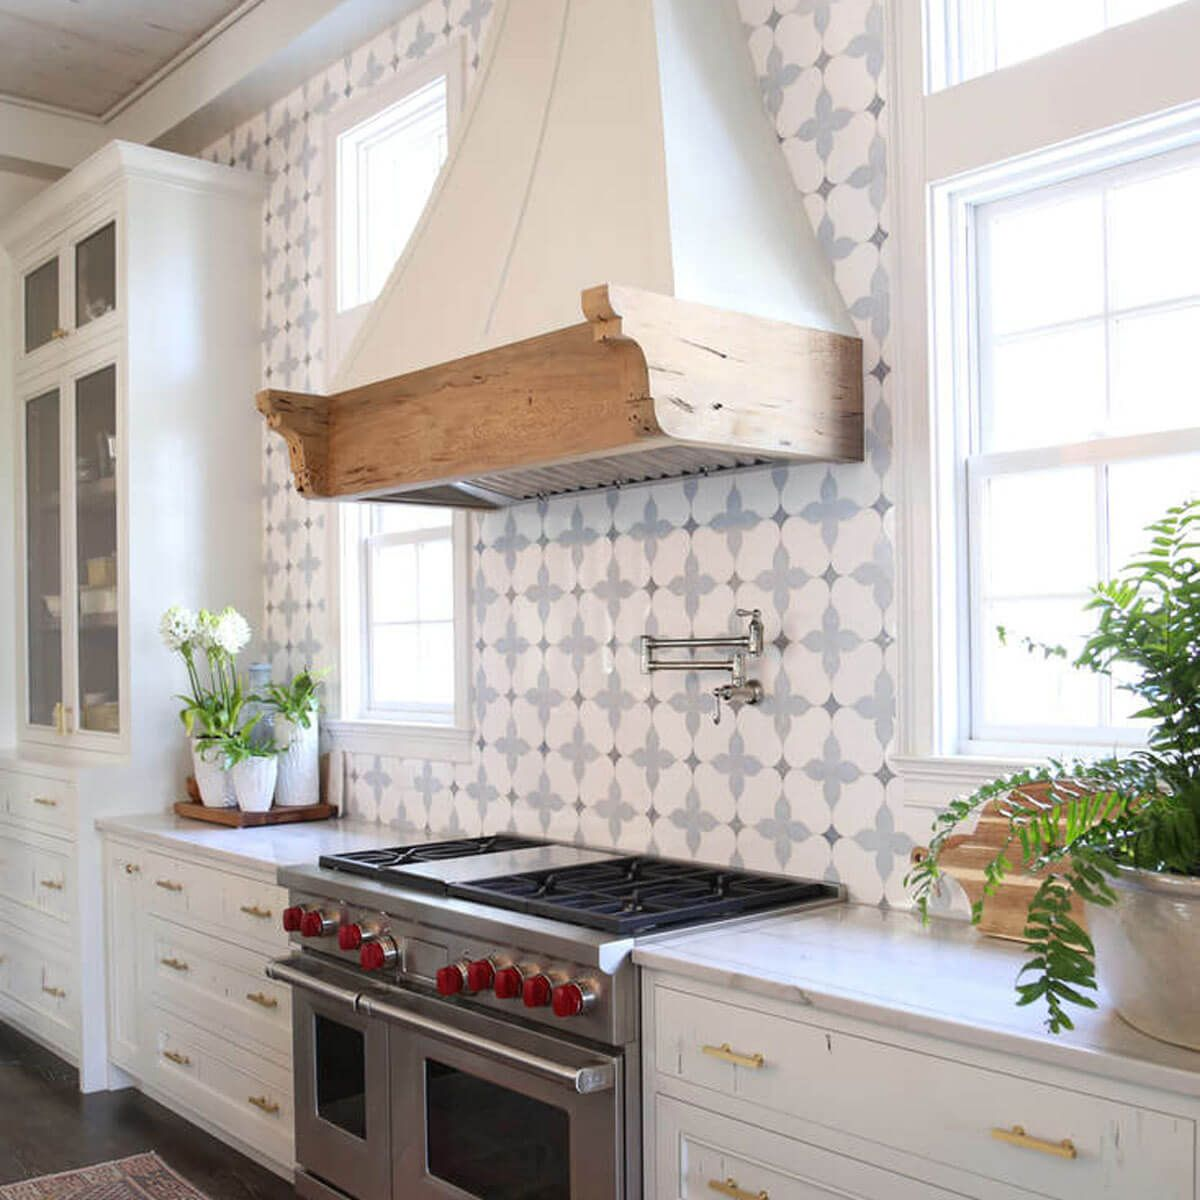 14 Showstopping Tile Backsplash Ideas To Suit Any Style ... - photo#2